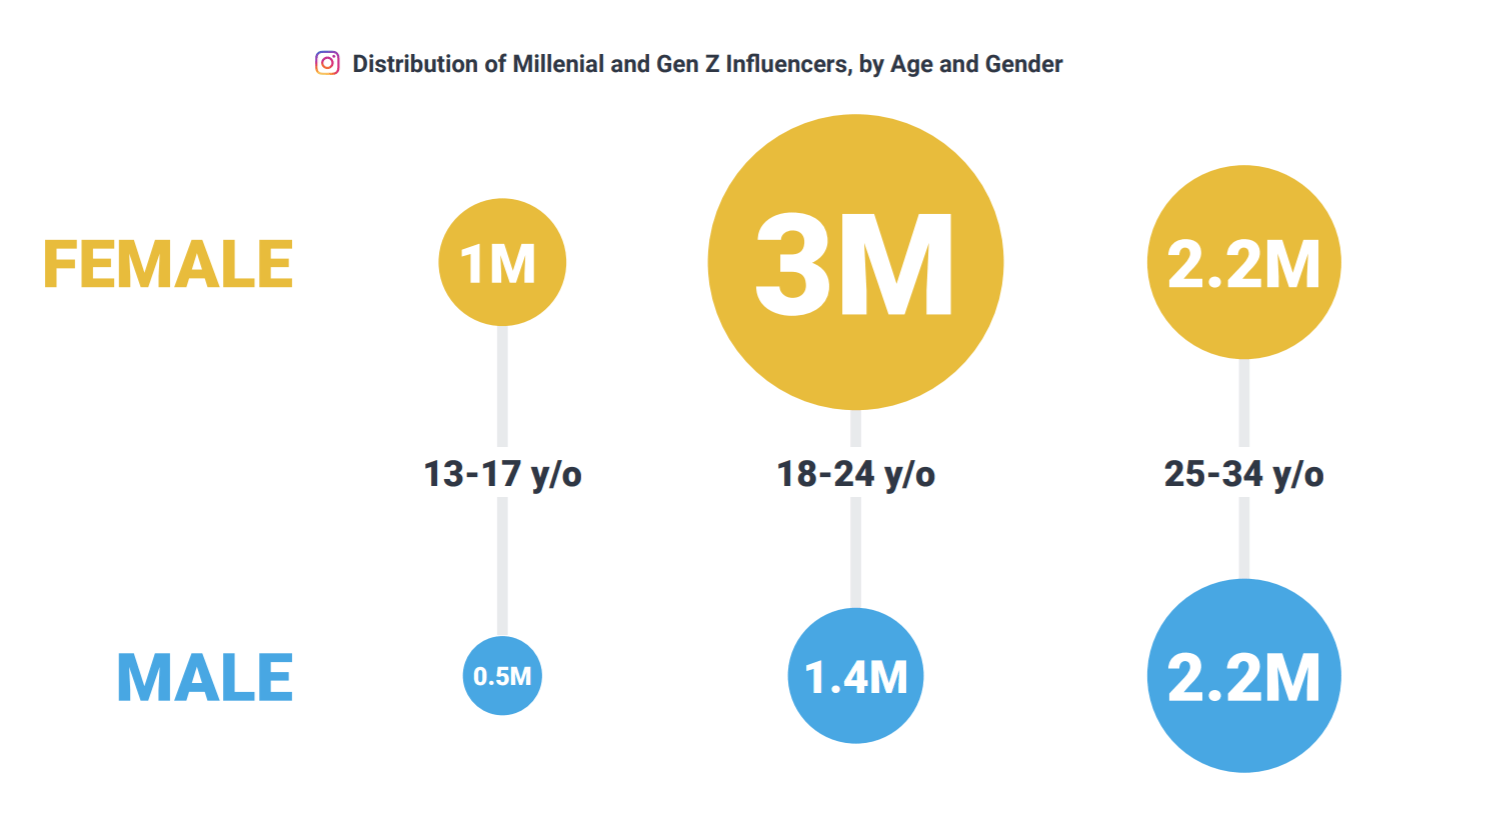 Instagram influencer demographics